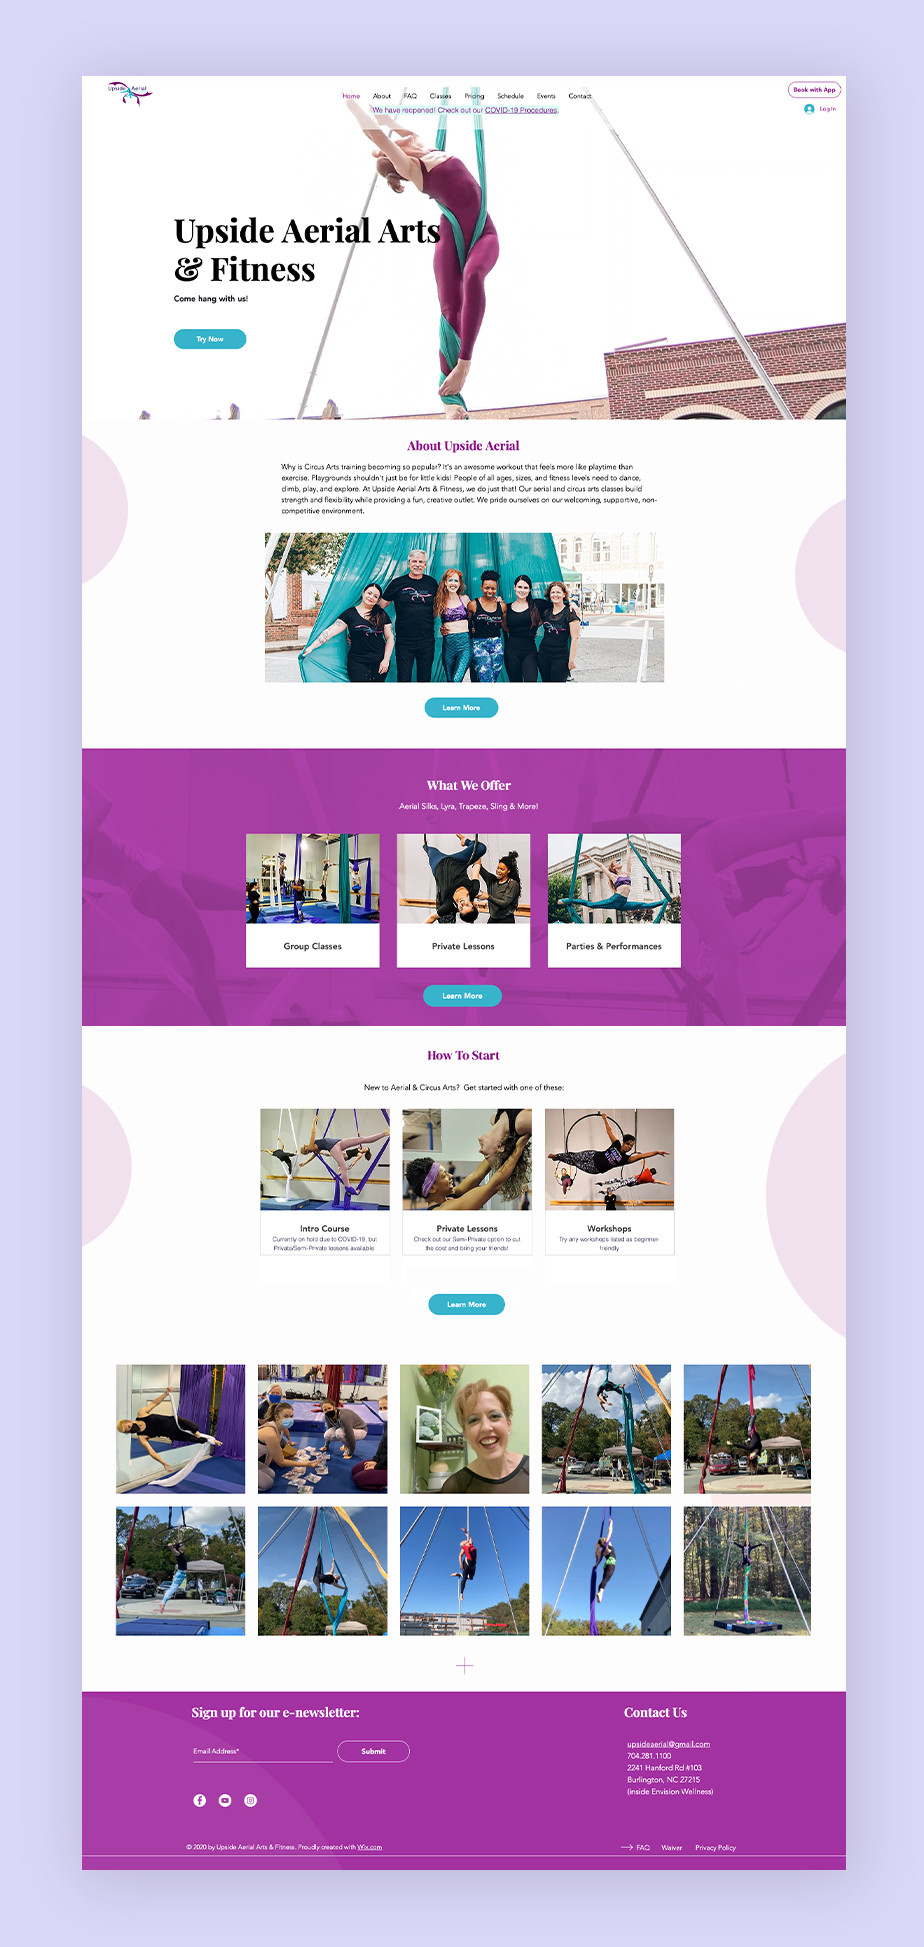 Wix Bookings Examples: Upside Aerial Arts and Fitness